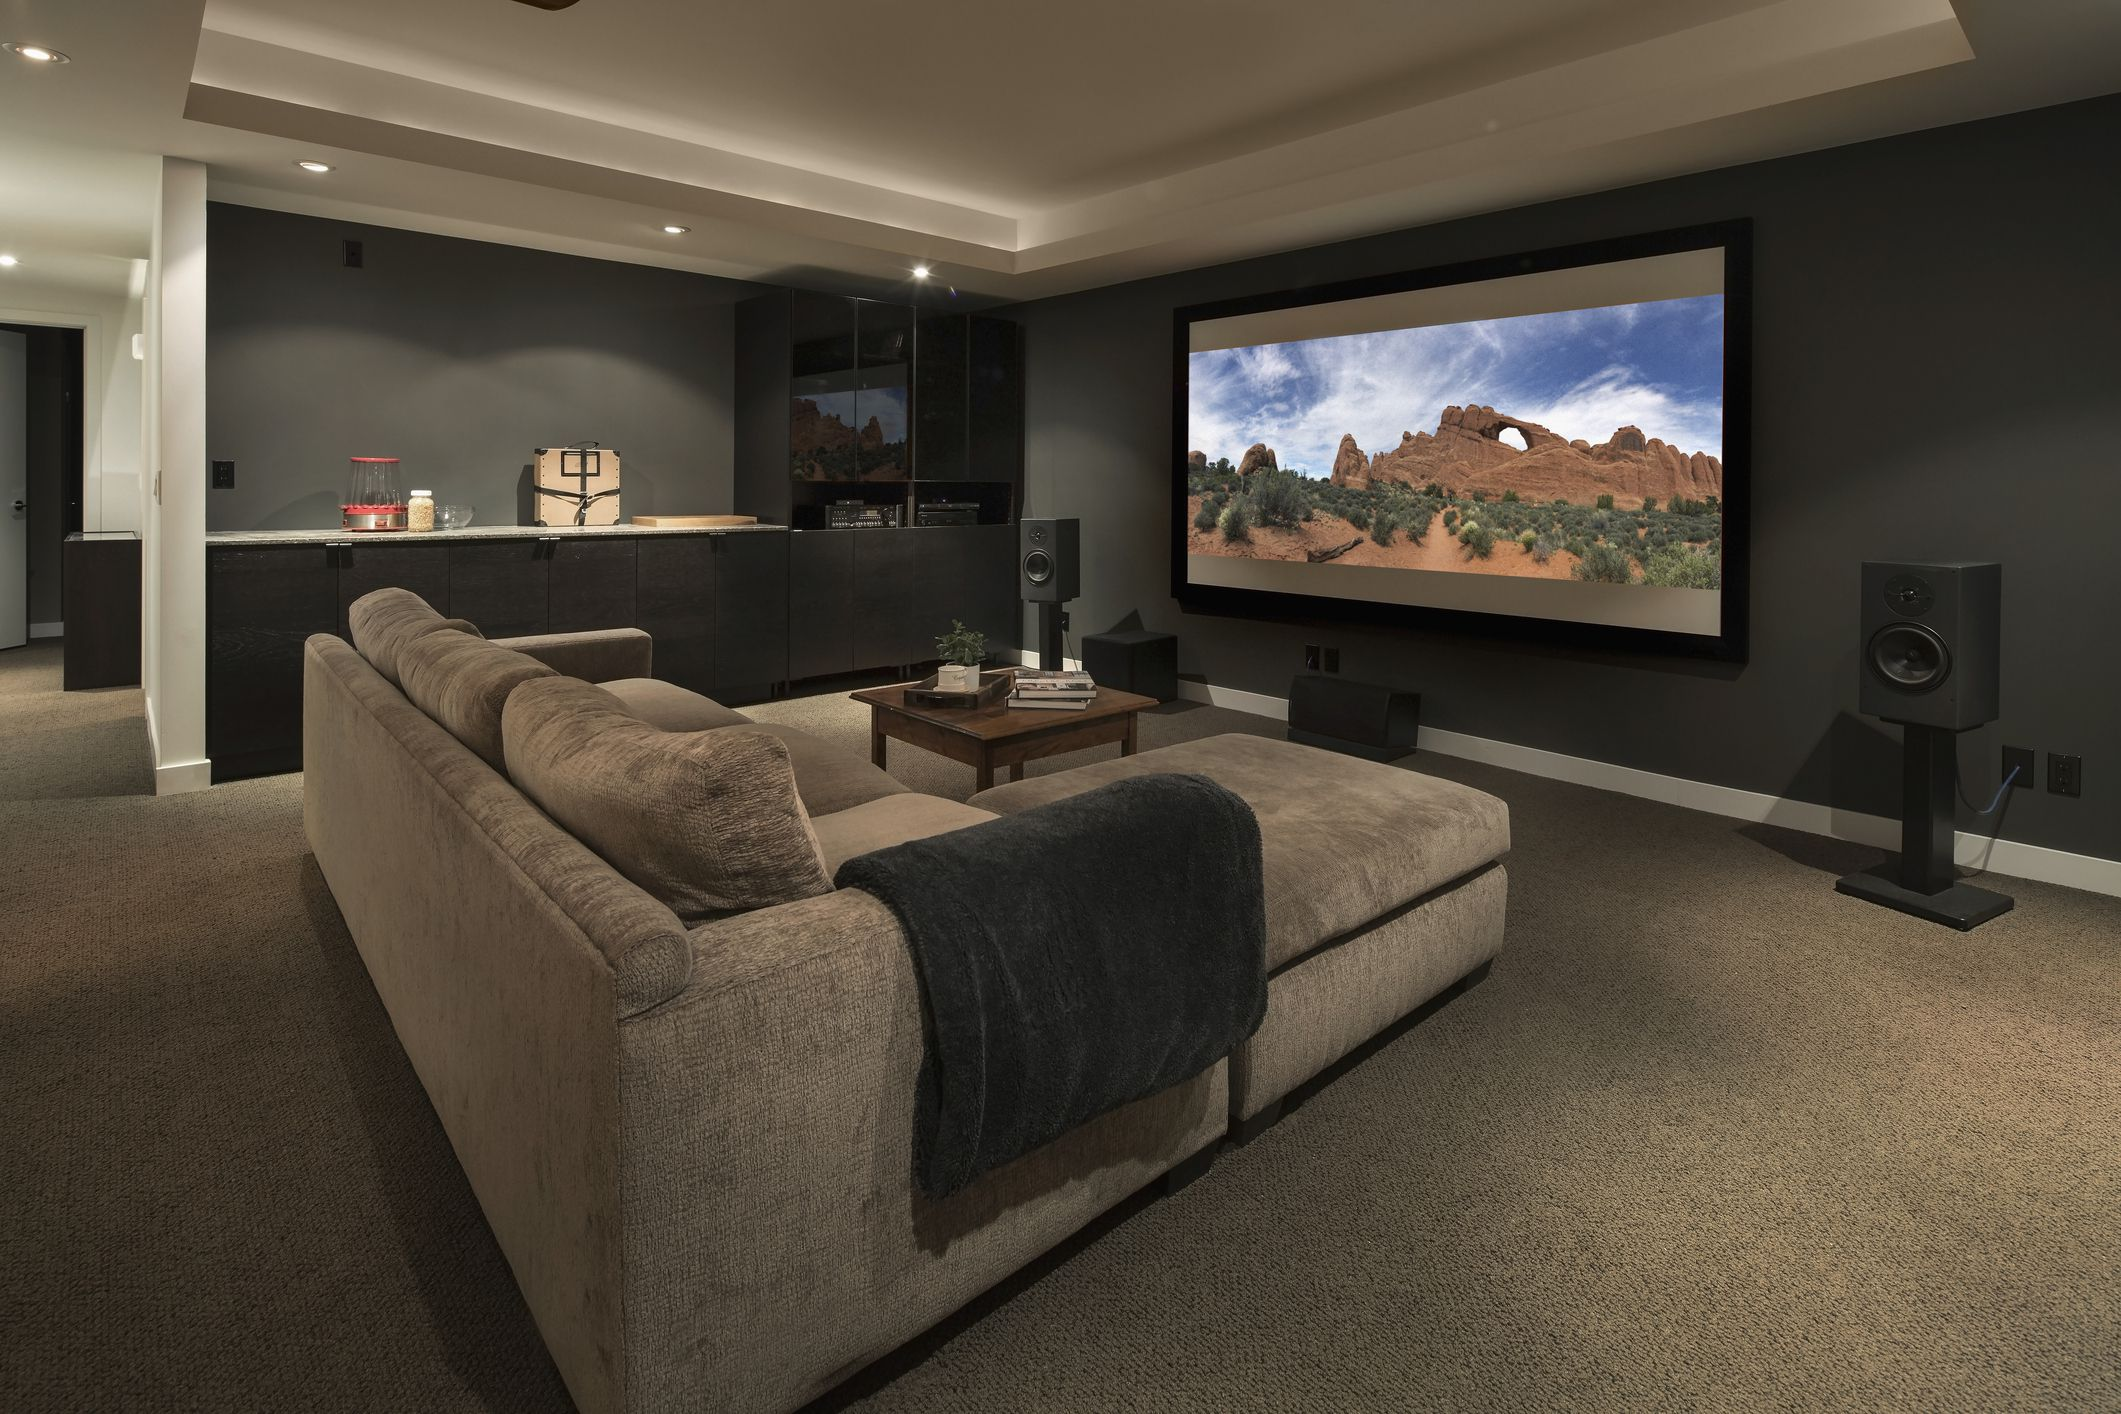 Stereo systems speakers components and sources - Home theatre planning and design guide ...